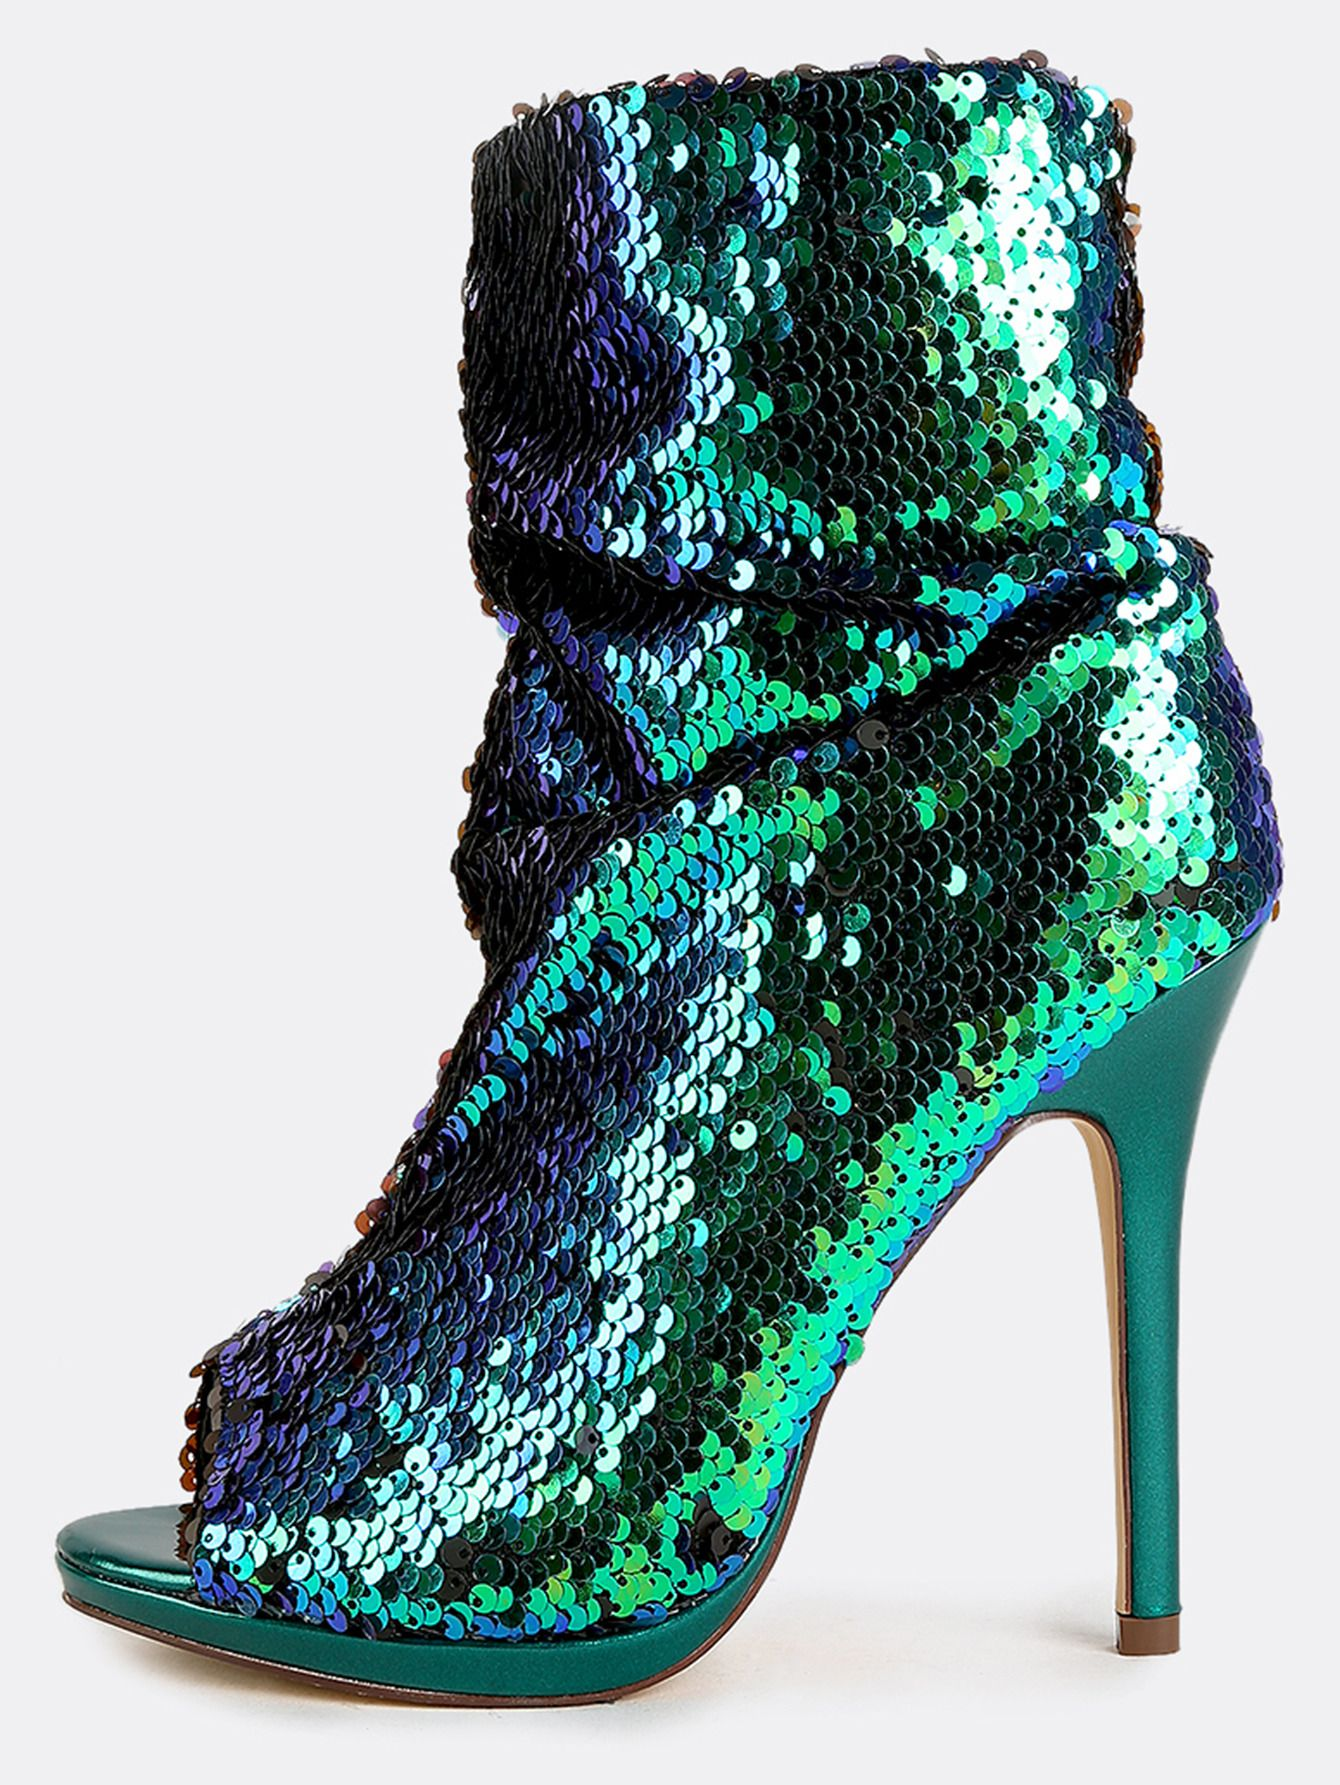 c0a9357bfef Mermaid+Sequin+Stiletto+Boots+GREEN+HOLOGRAM+47.90